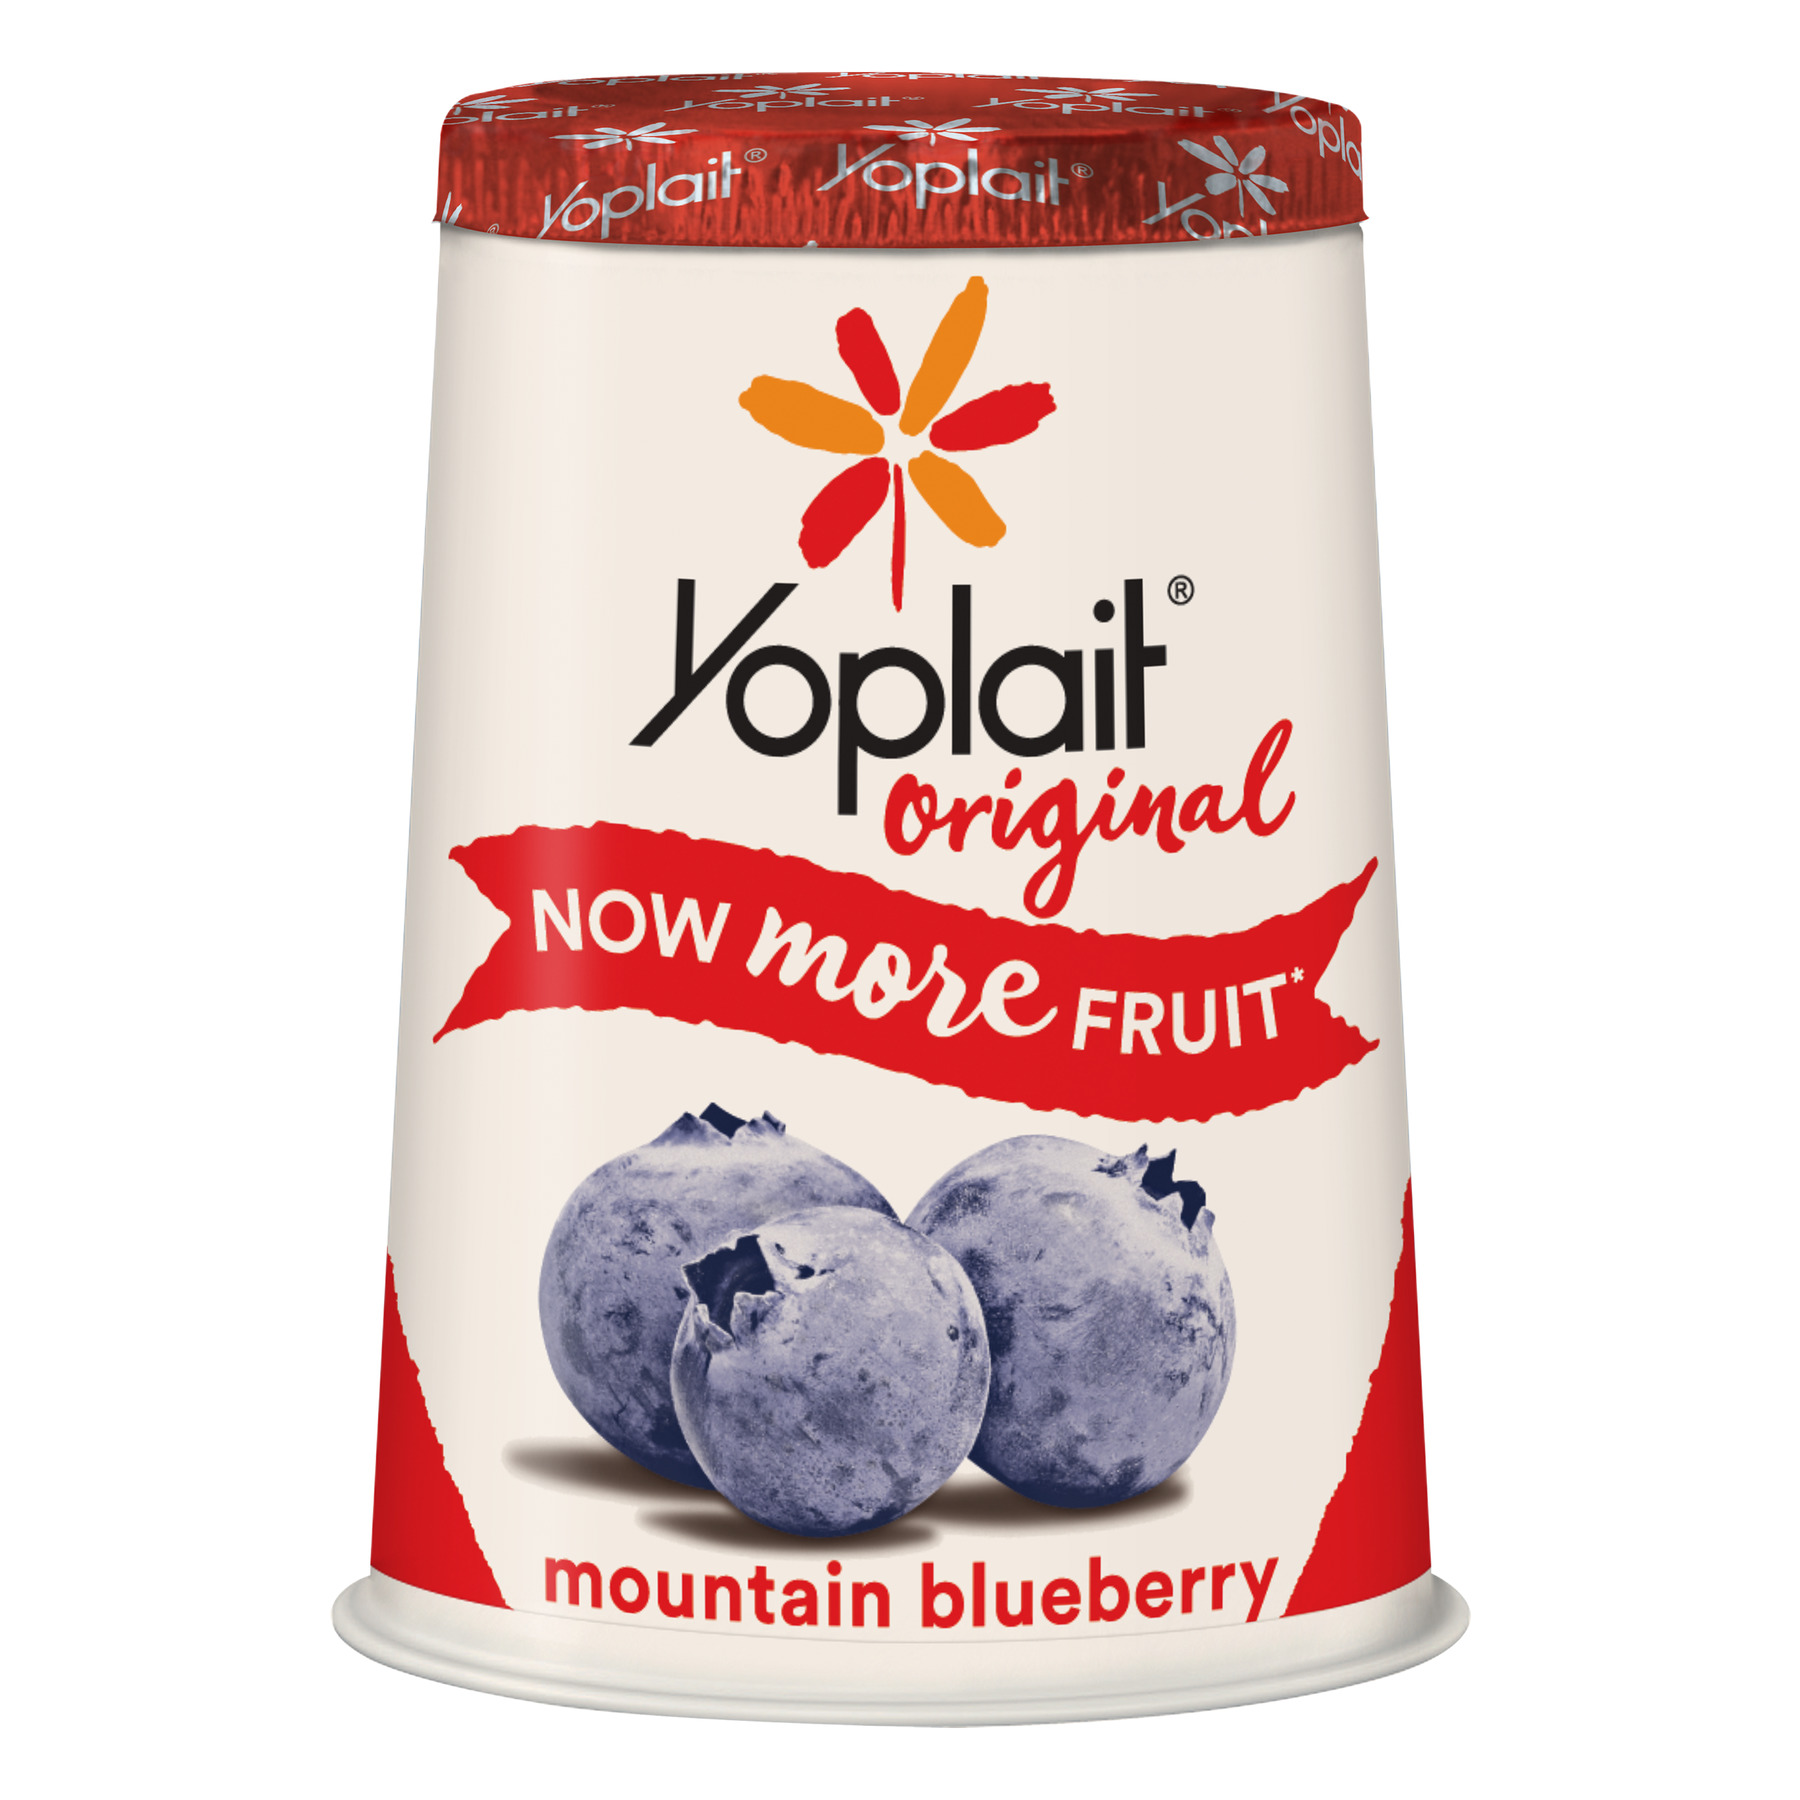 Yoplait Original Yogurt Mountain Blueberry, 6 oz Cup